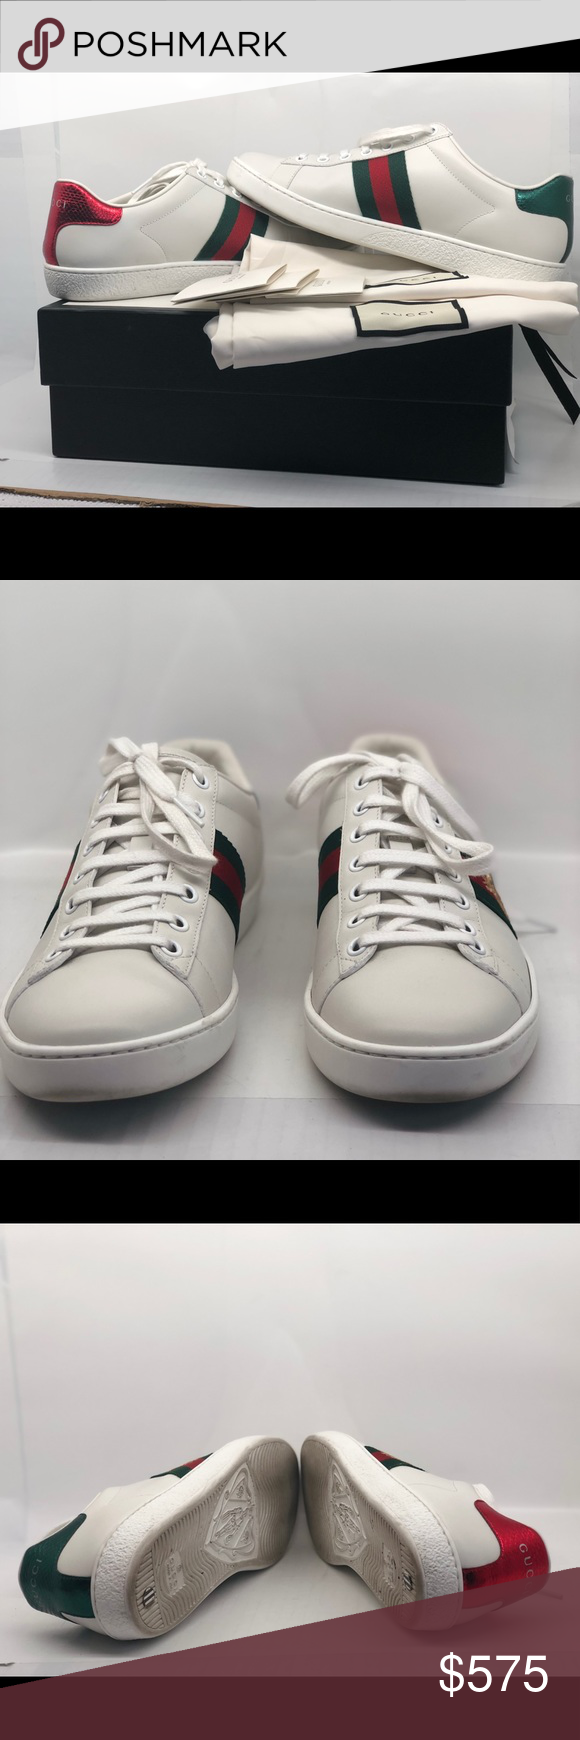 Gucci-Ace embroidered sneaker Gucci-Ace